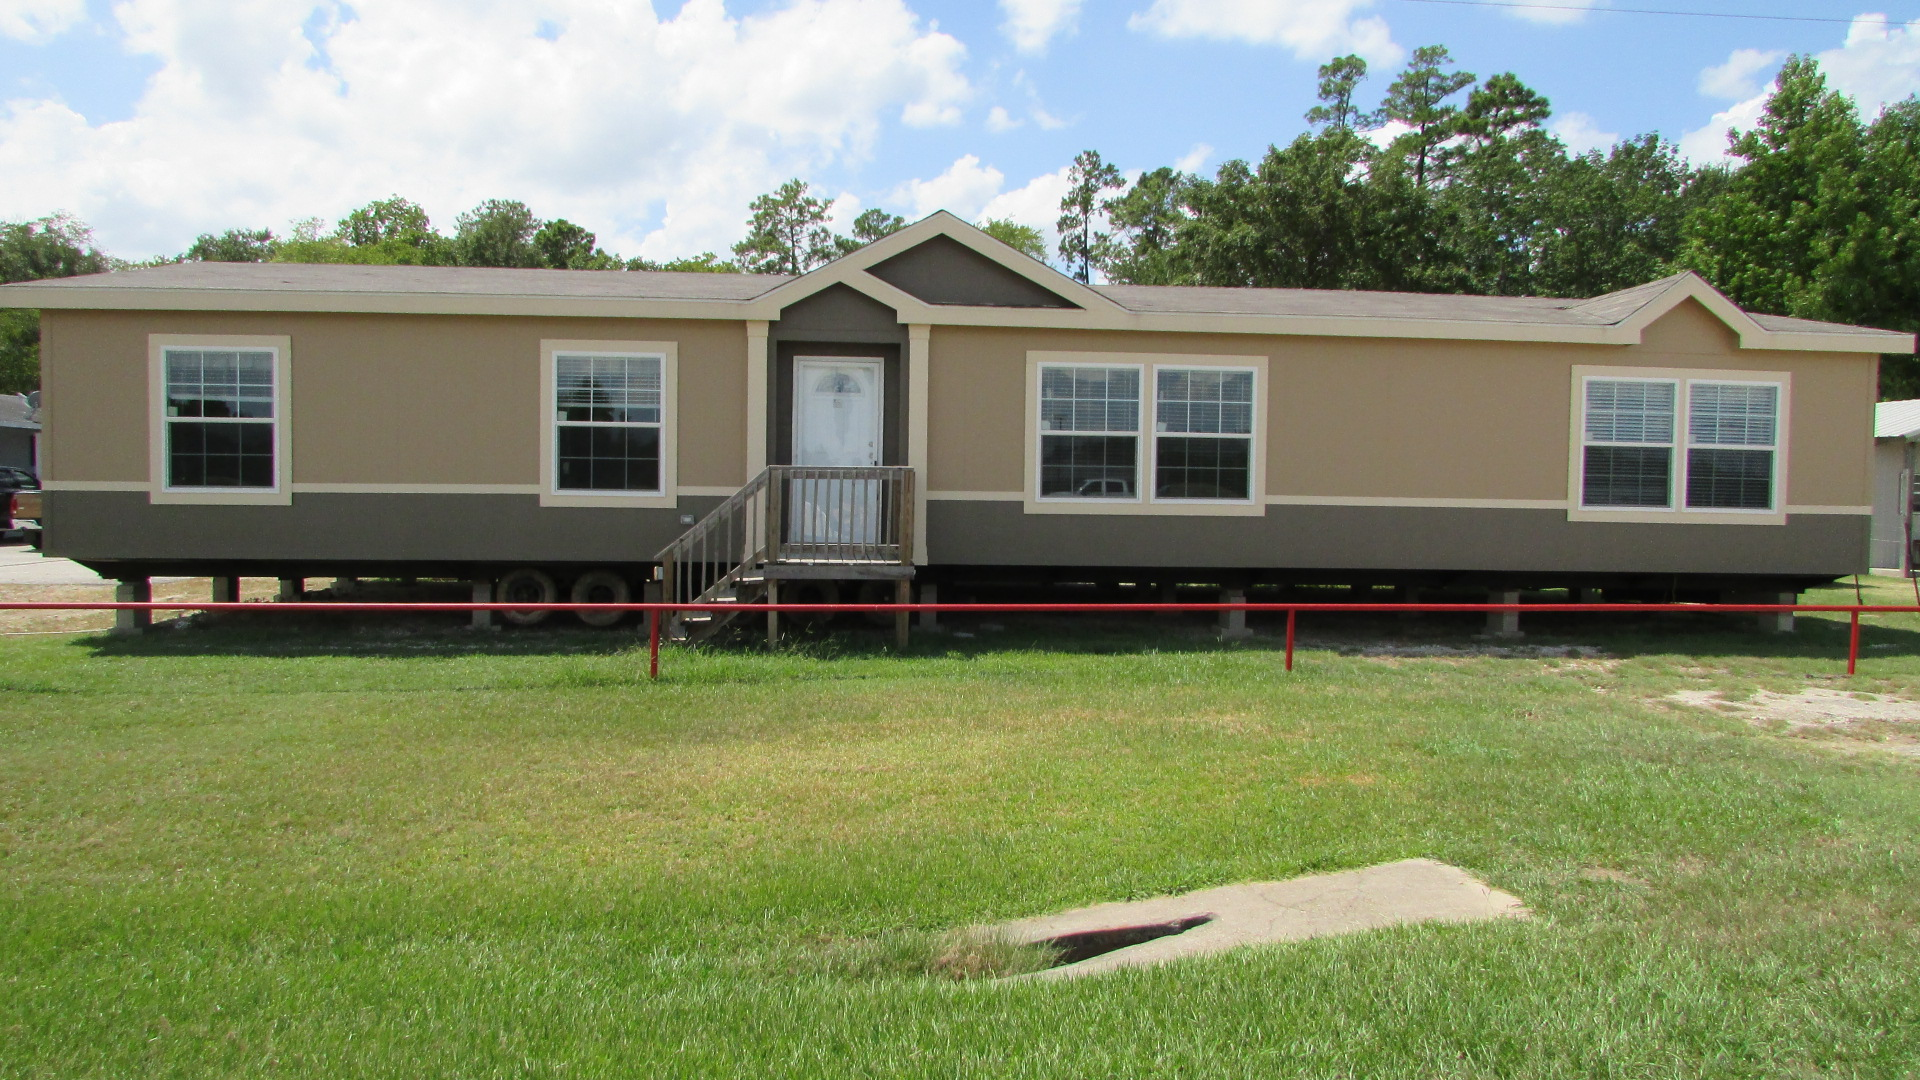 mobile homes for sale in shreveport la with Ch Ion Mobile Homes on Baytown besides Tioga Louisiana also Ch ion Mobile Homes additionally Dovetail Log Homes as well Black Creek Road Florence Mobile Home  munity.